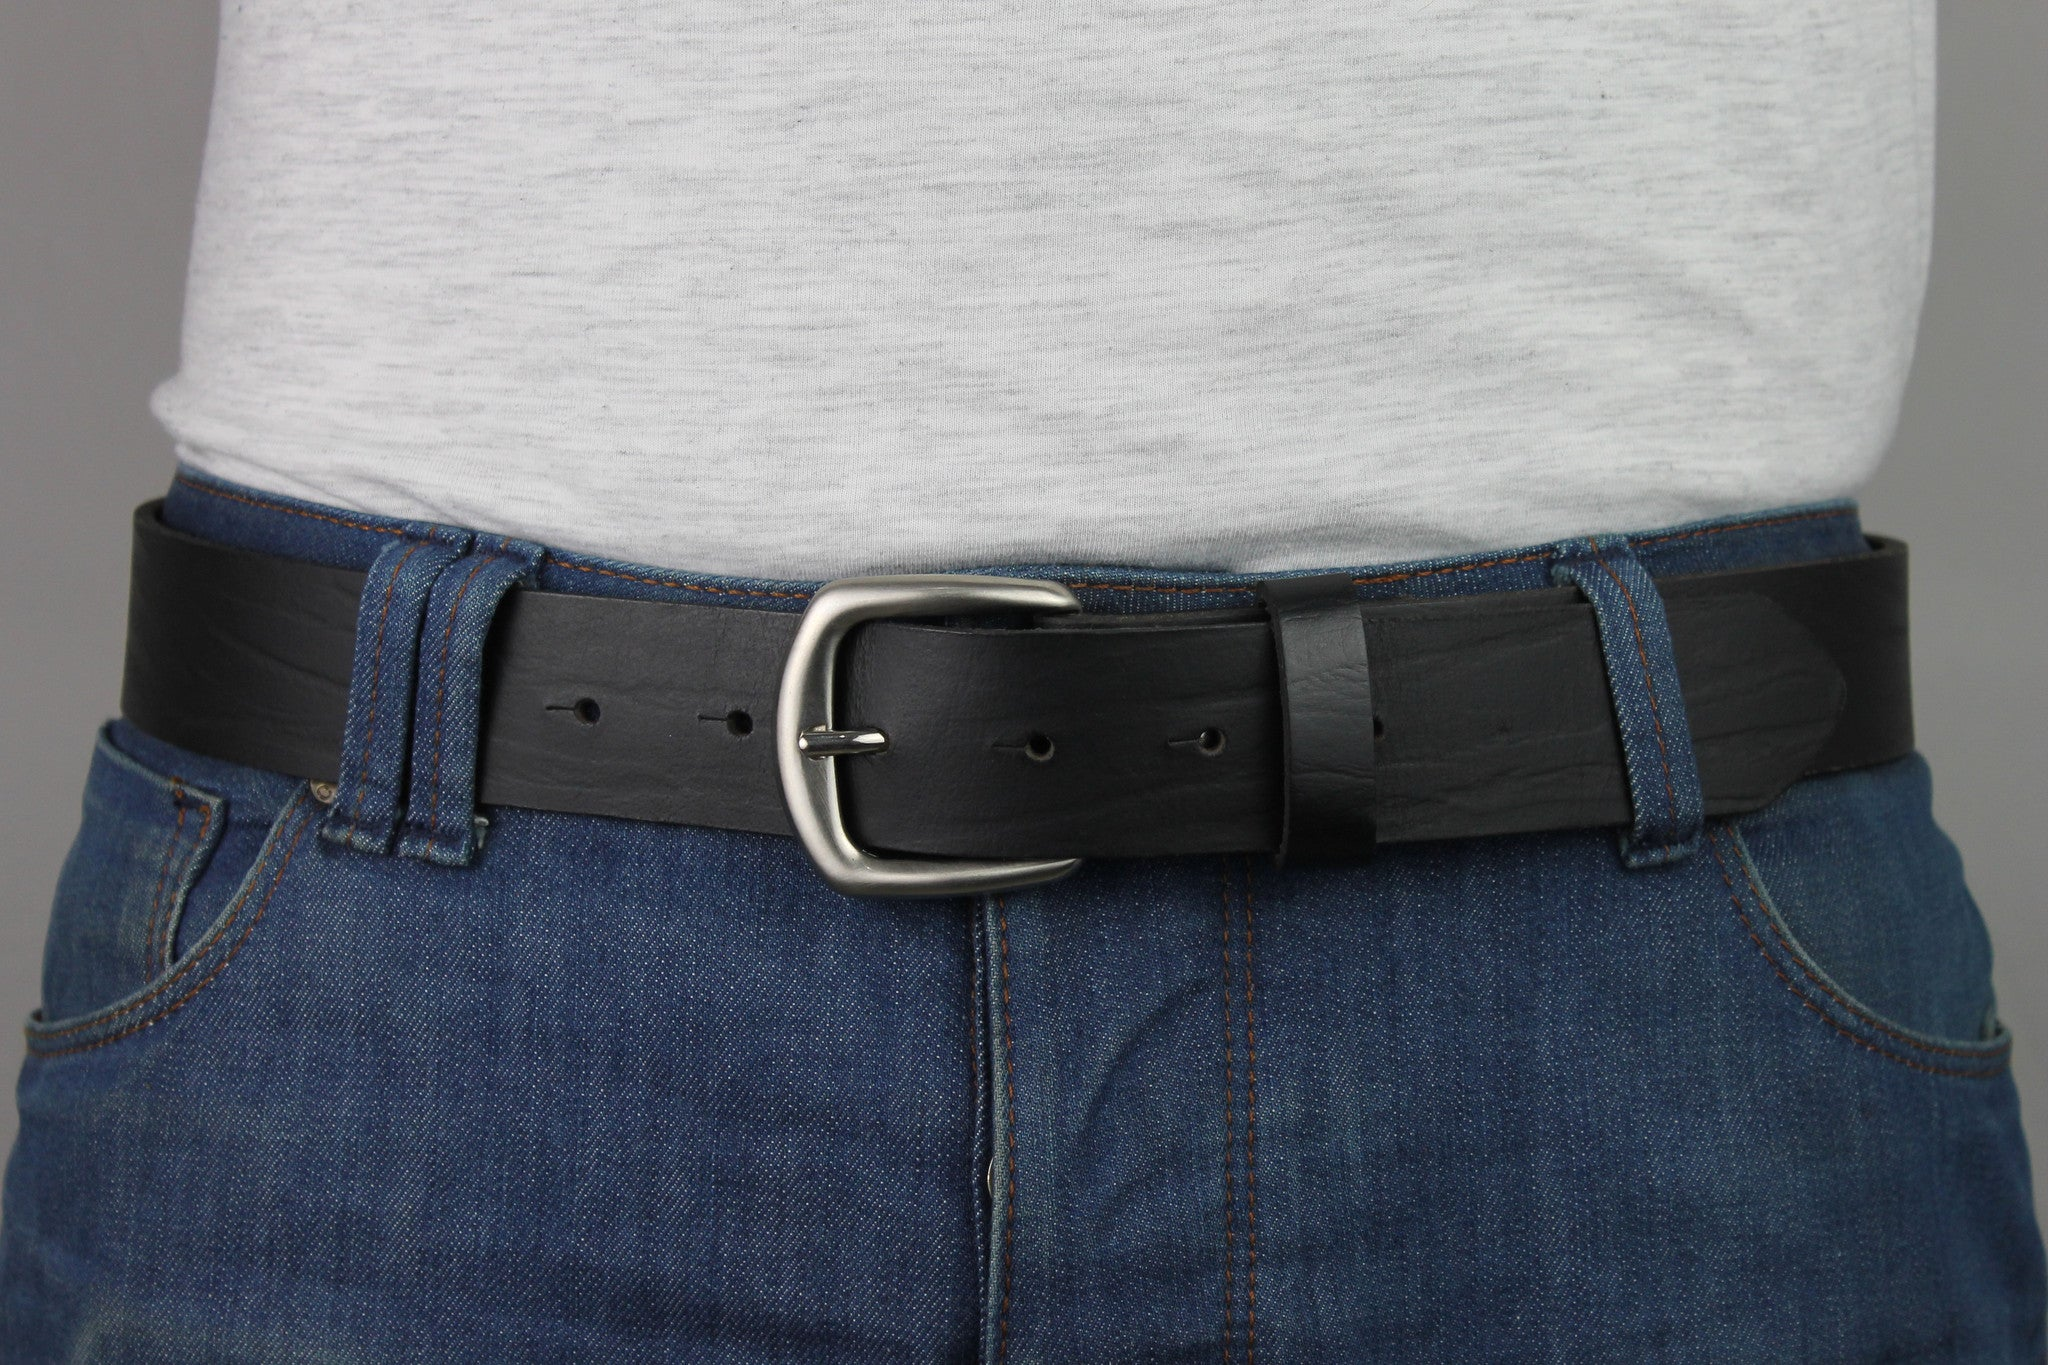 Mens Leather Belts For Jeans Best Casual Belts Fullgrain Handmade Leather 1101 - United Split